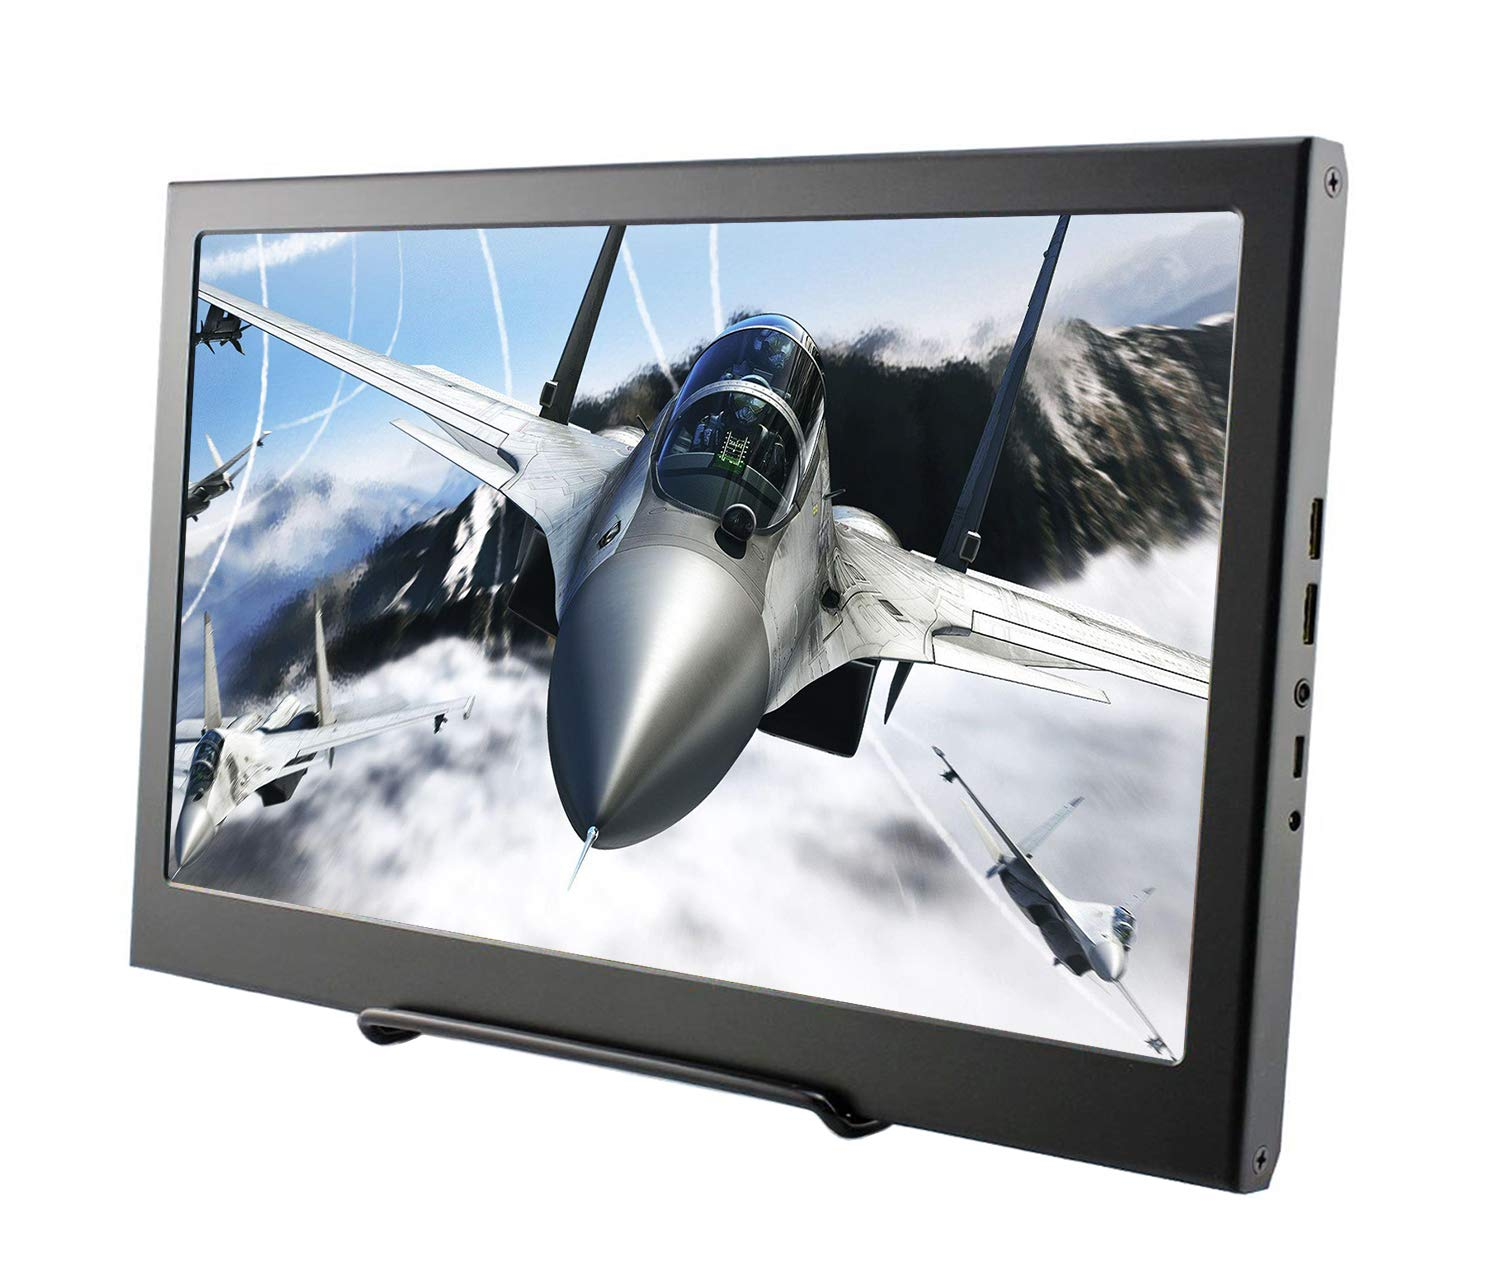 13.3 Inch HDMI Monitor, FHD IPS 1920X1080 16:9 Display VESA Mount Aluminum Housing Screen Game Monitor for PC/PS3/PS4/Xbox/Laptop